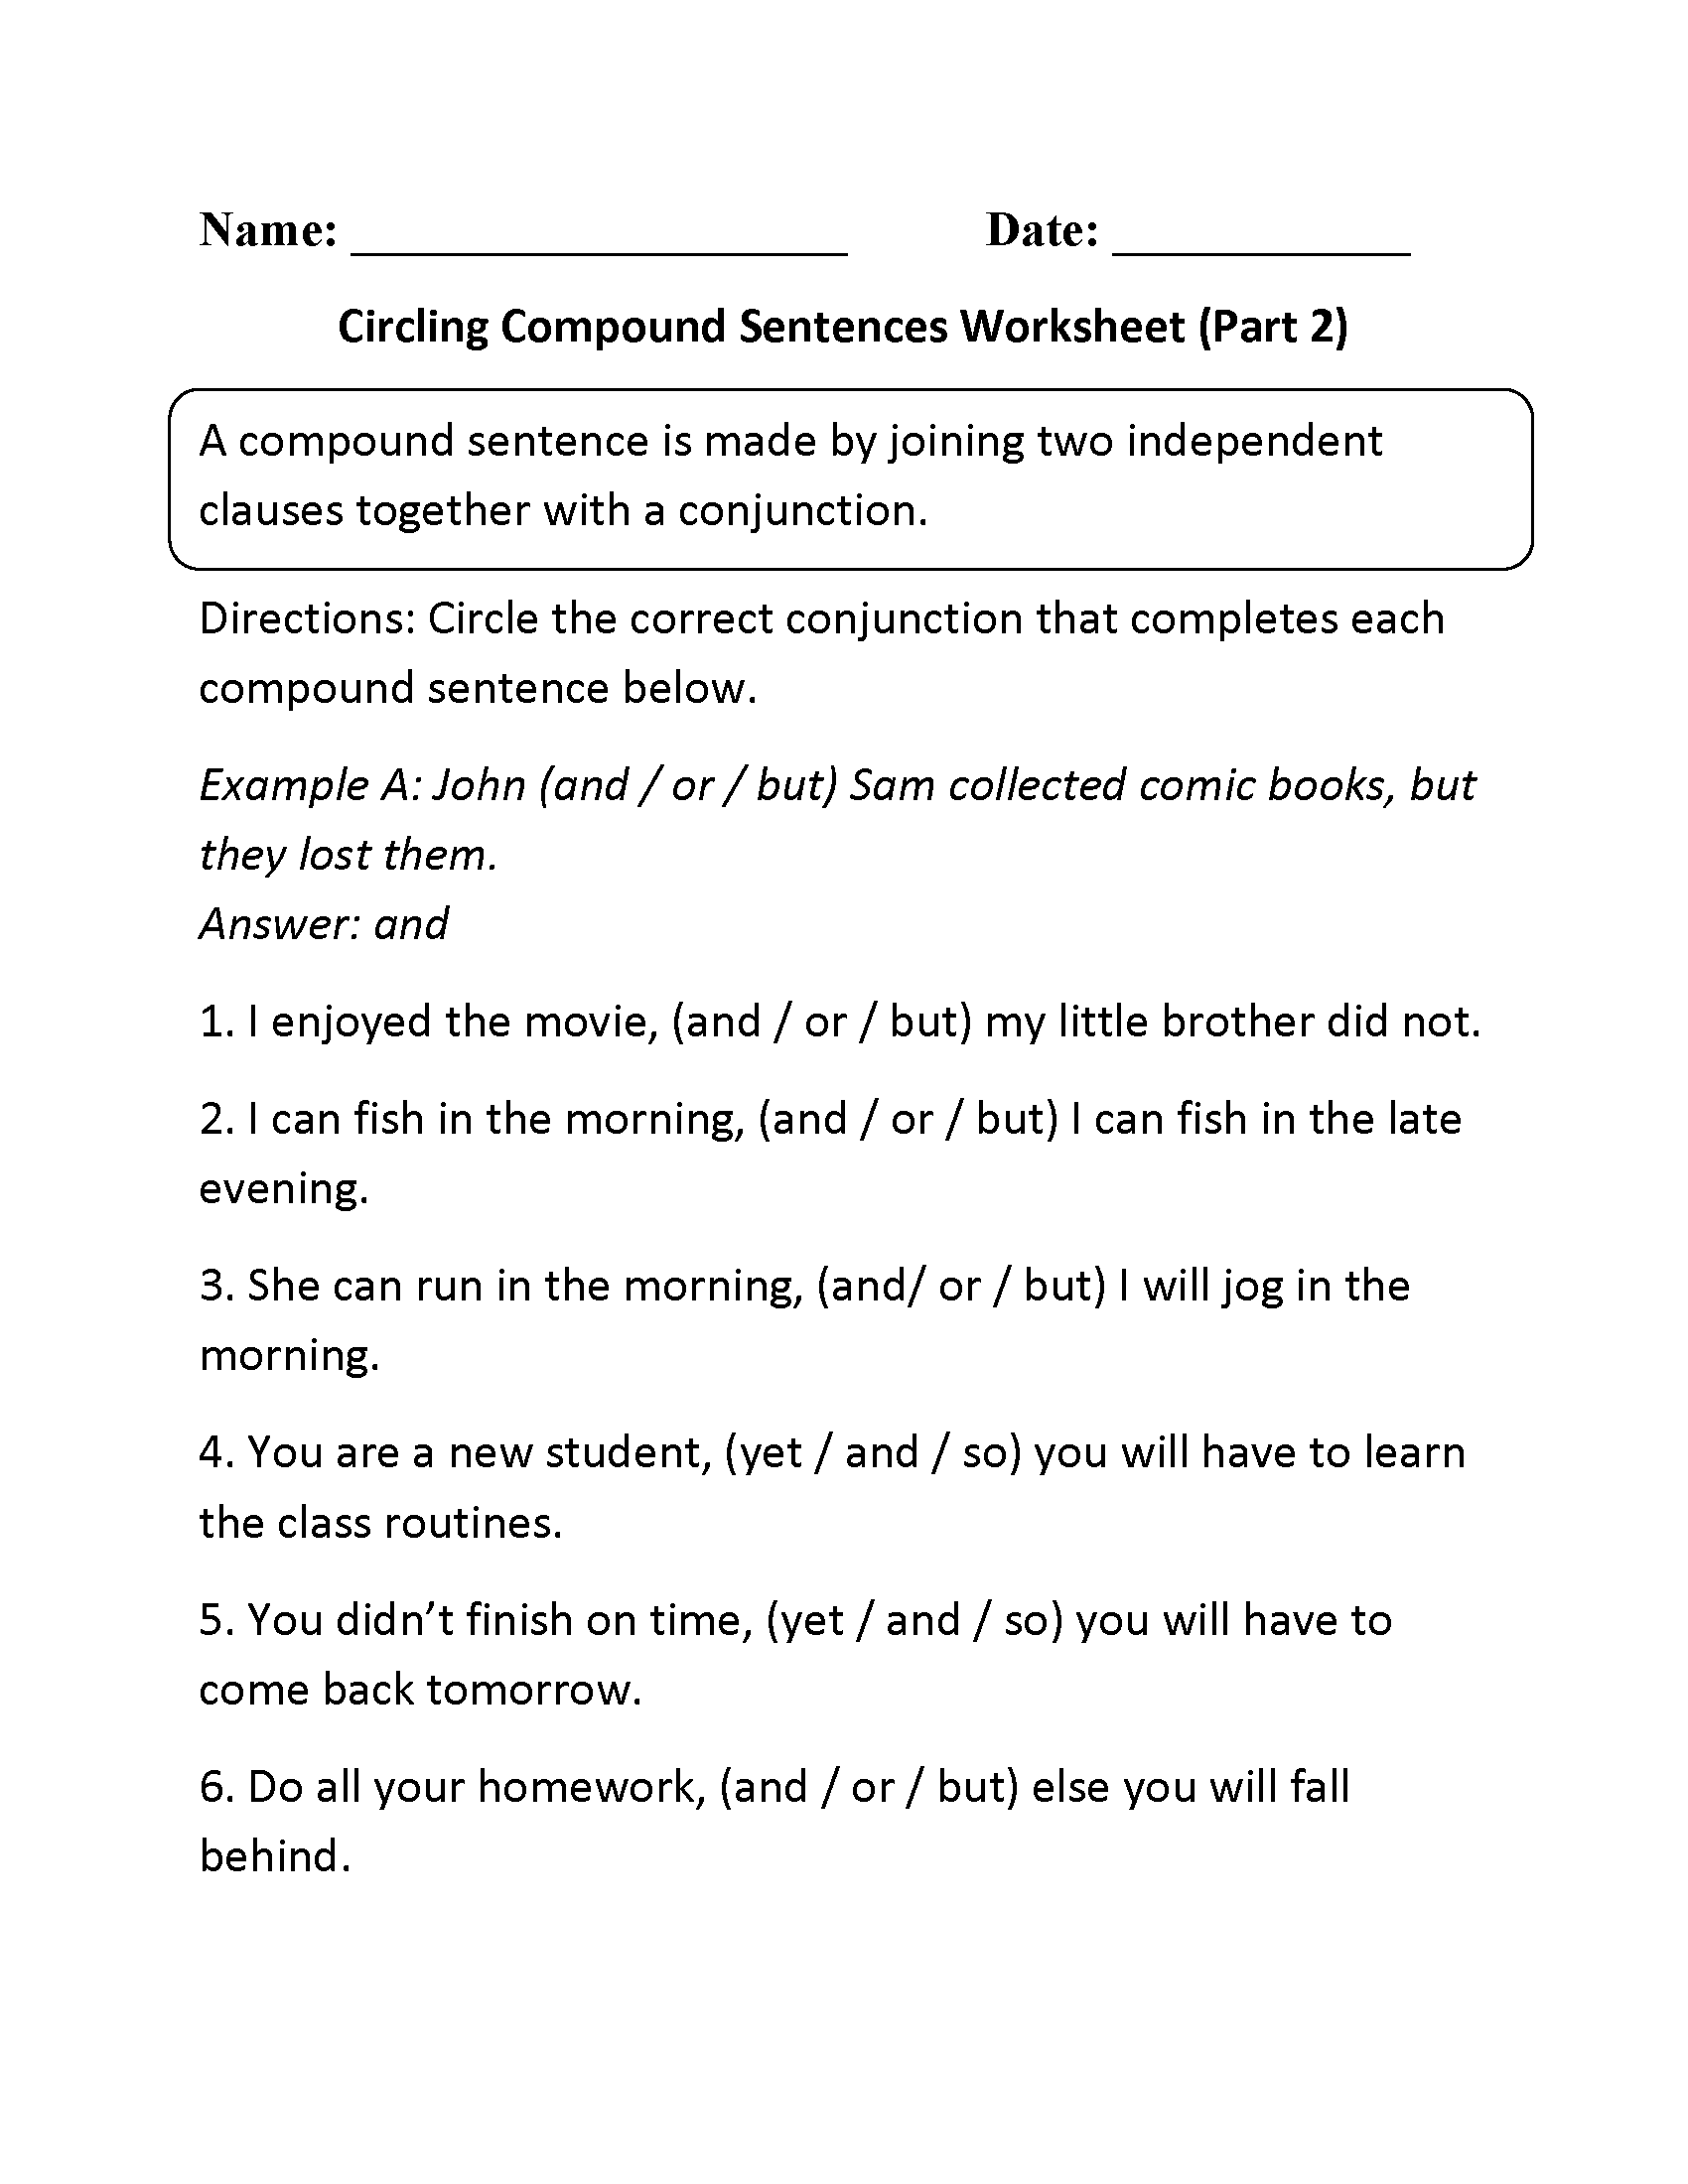 Circling Compound Sentences Worksheet Part 2